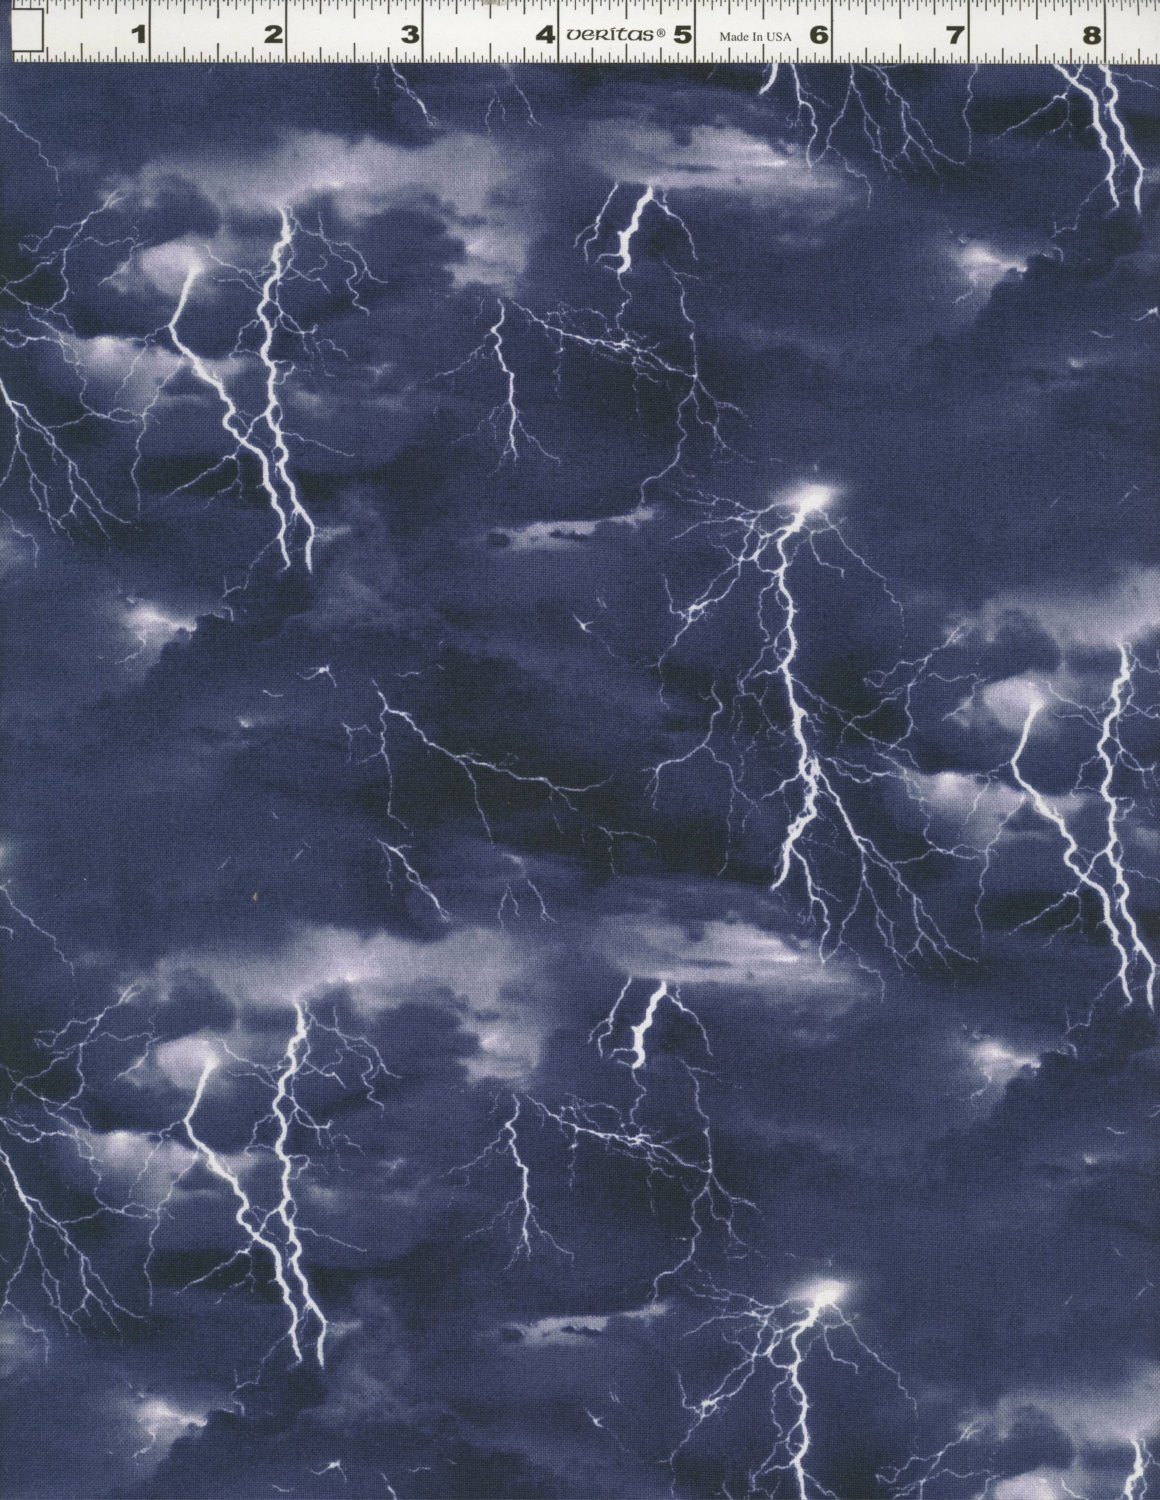 Cotton Landscape Medley Thunder Storm Lightning Bolts Storm Chasers Clouds Black Cotton Fabric Print by the Yard (469-black) by Elizabeth's Studio B00T4O0J36